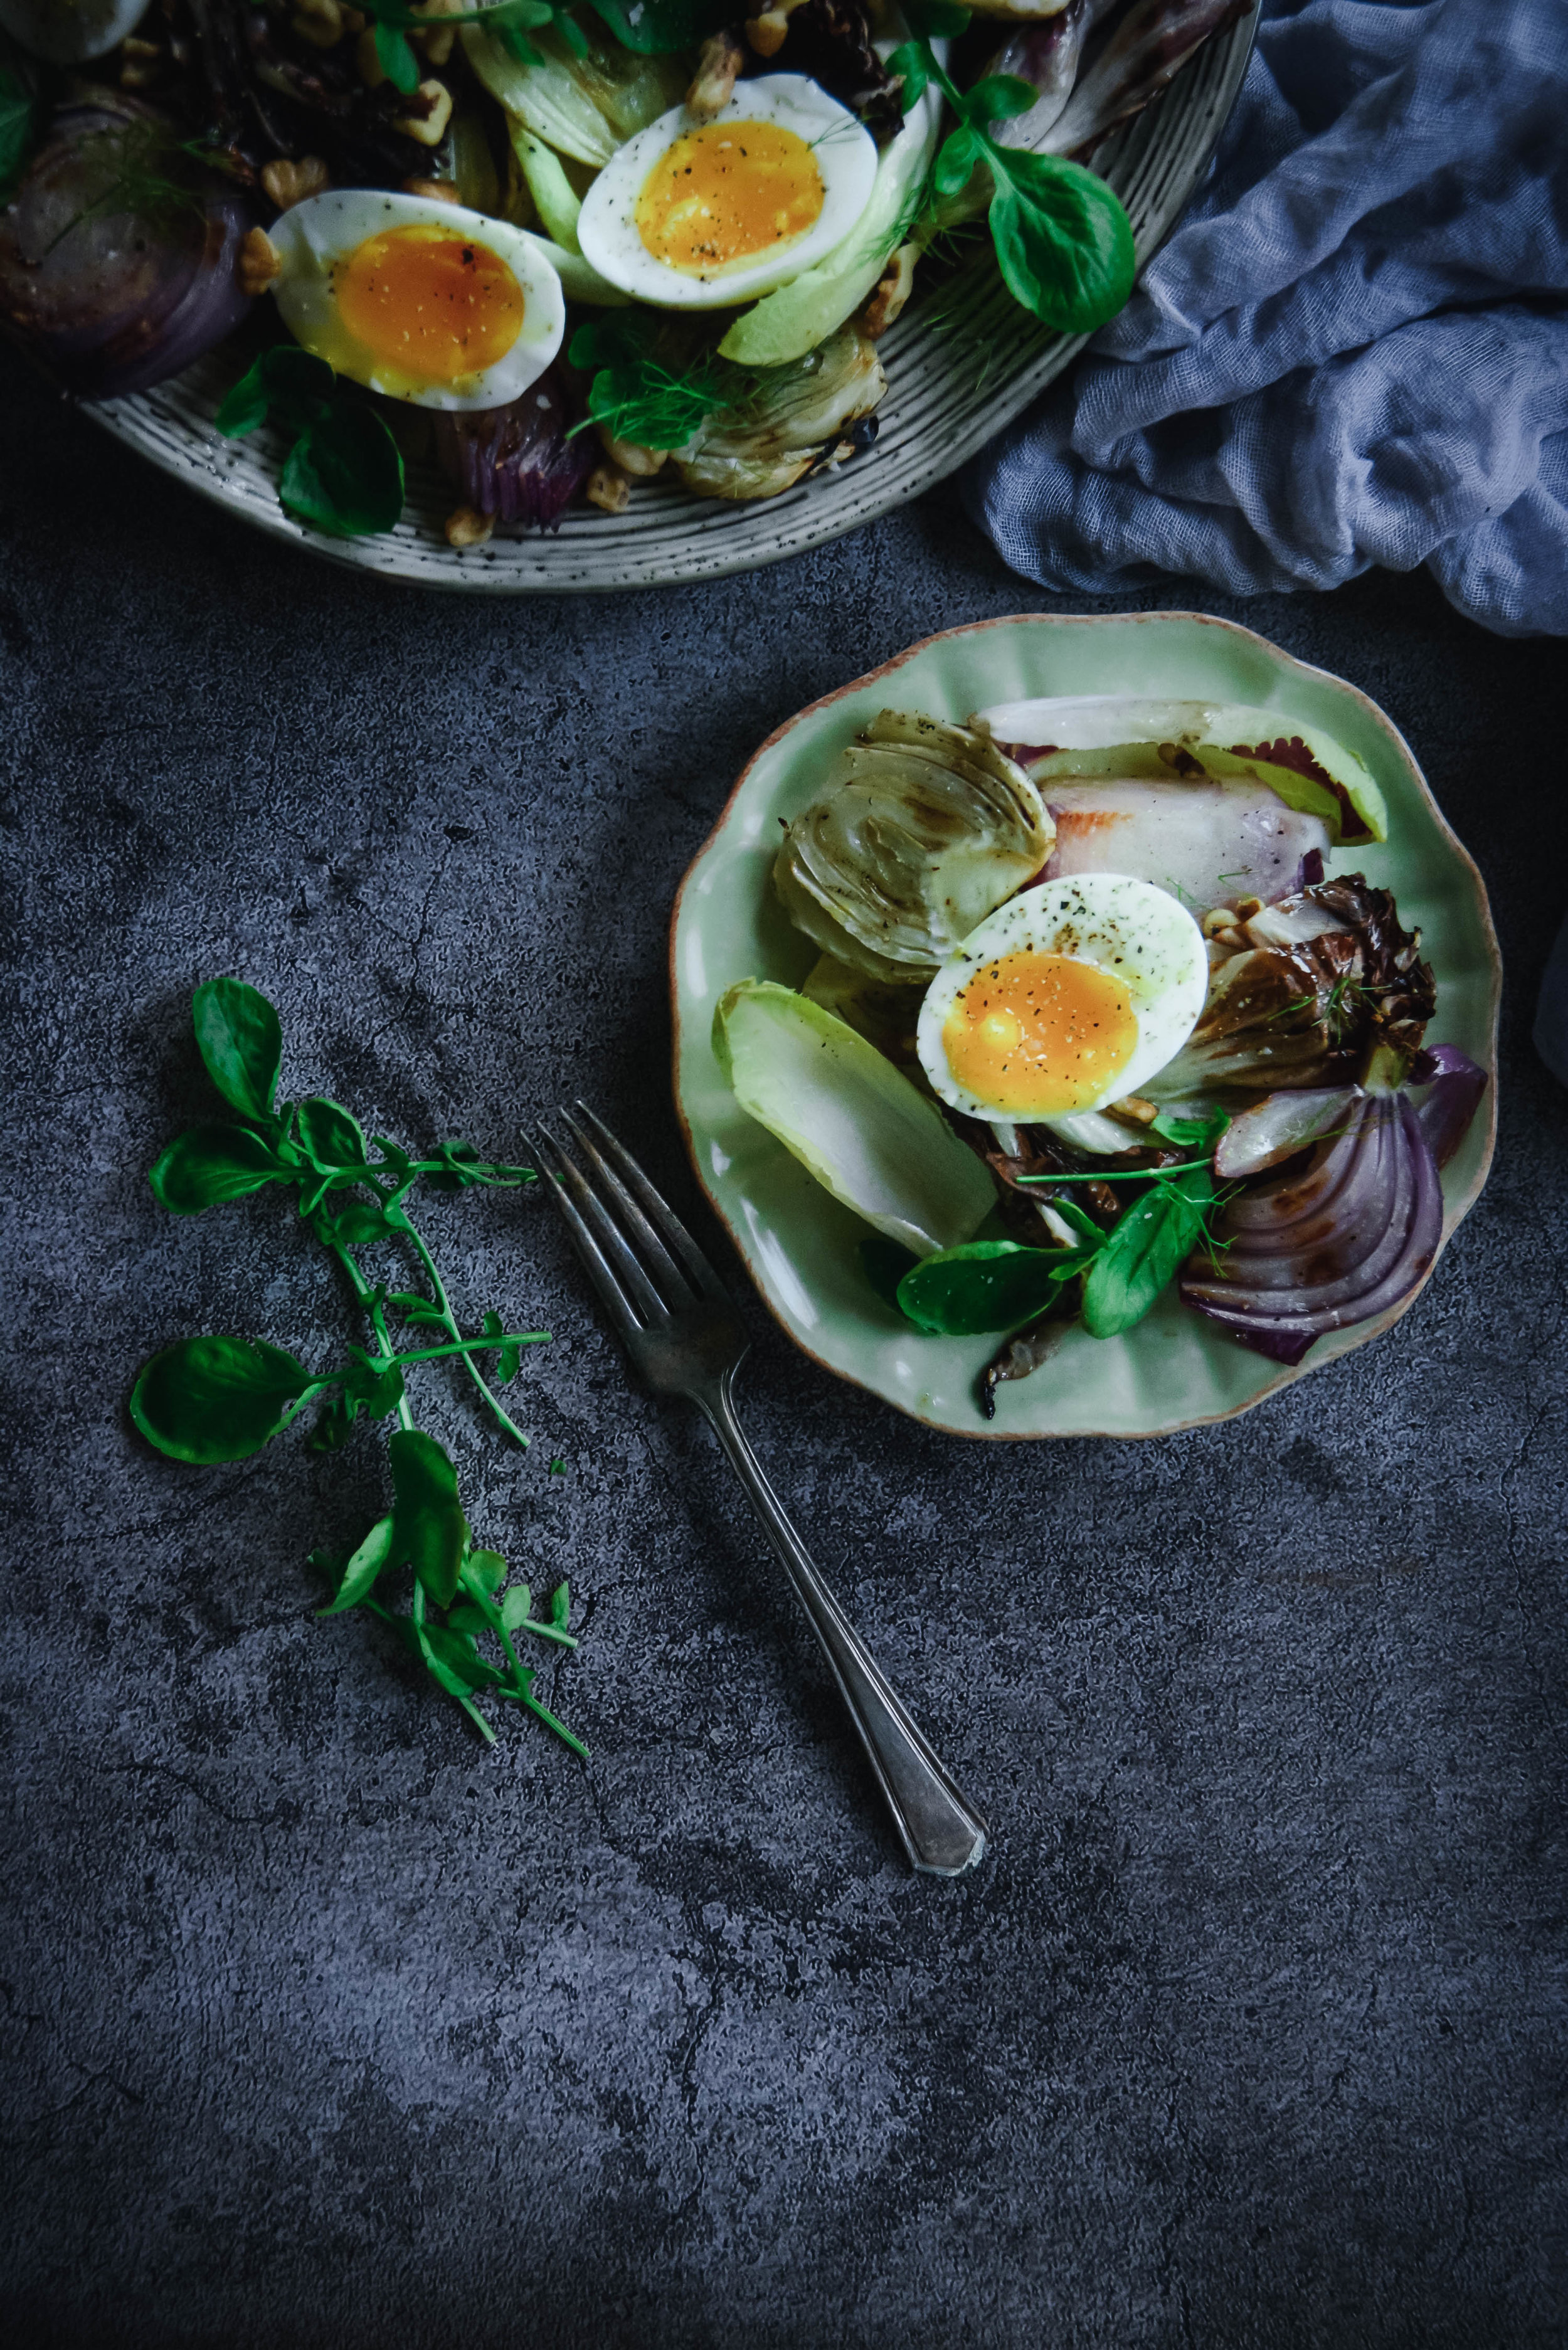 Radicchio salad on plates with greens, napkin and soft boiled eggs